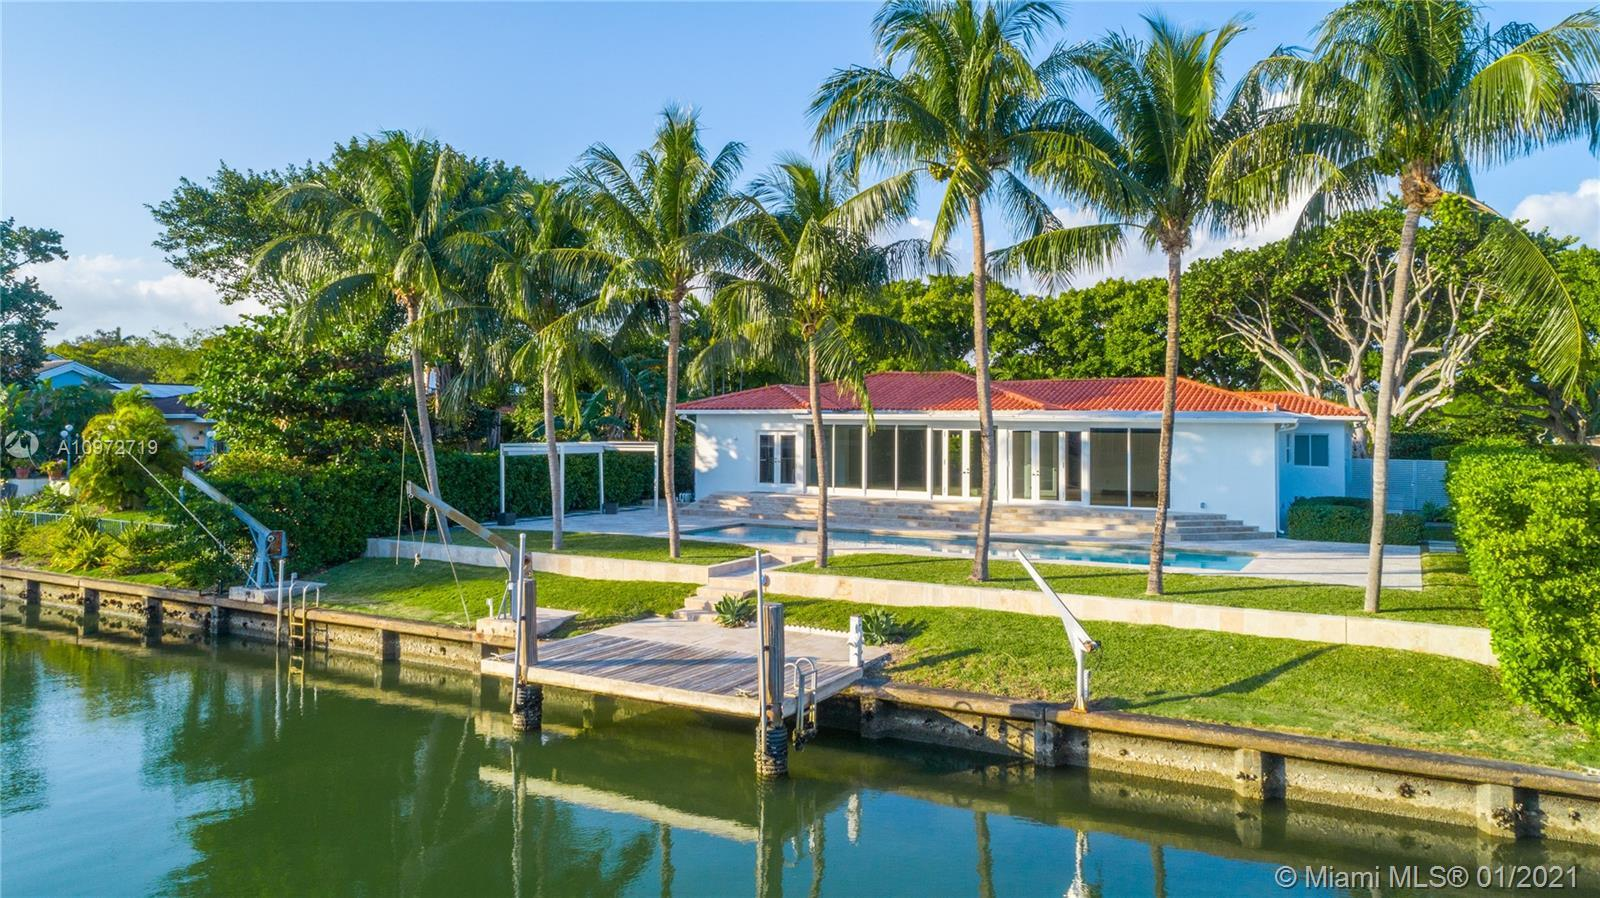 Stunning 3-bed/3-bath home available in Bay Point, an exclusive, gated community in the heart of Mia